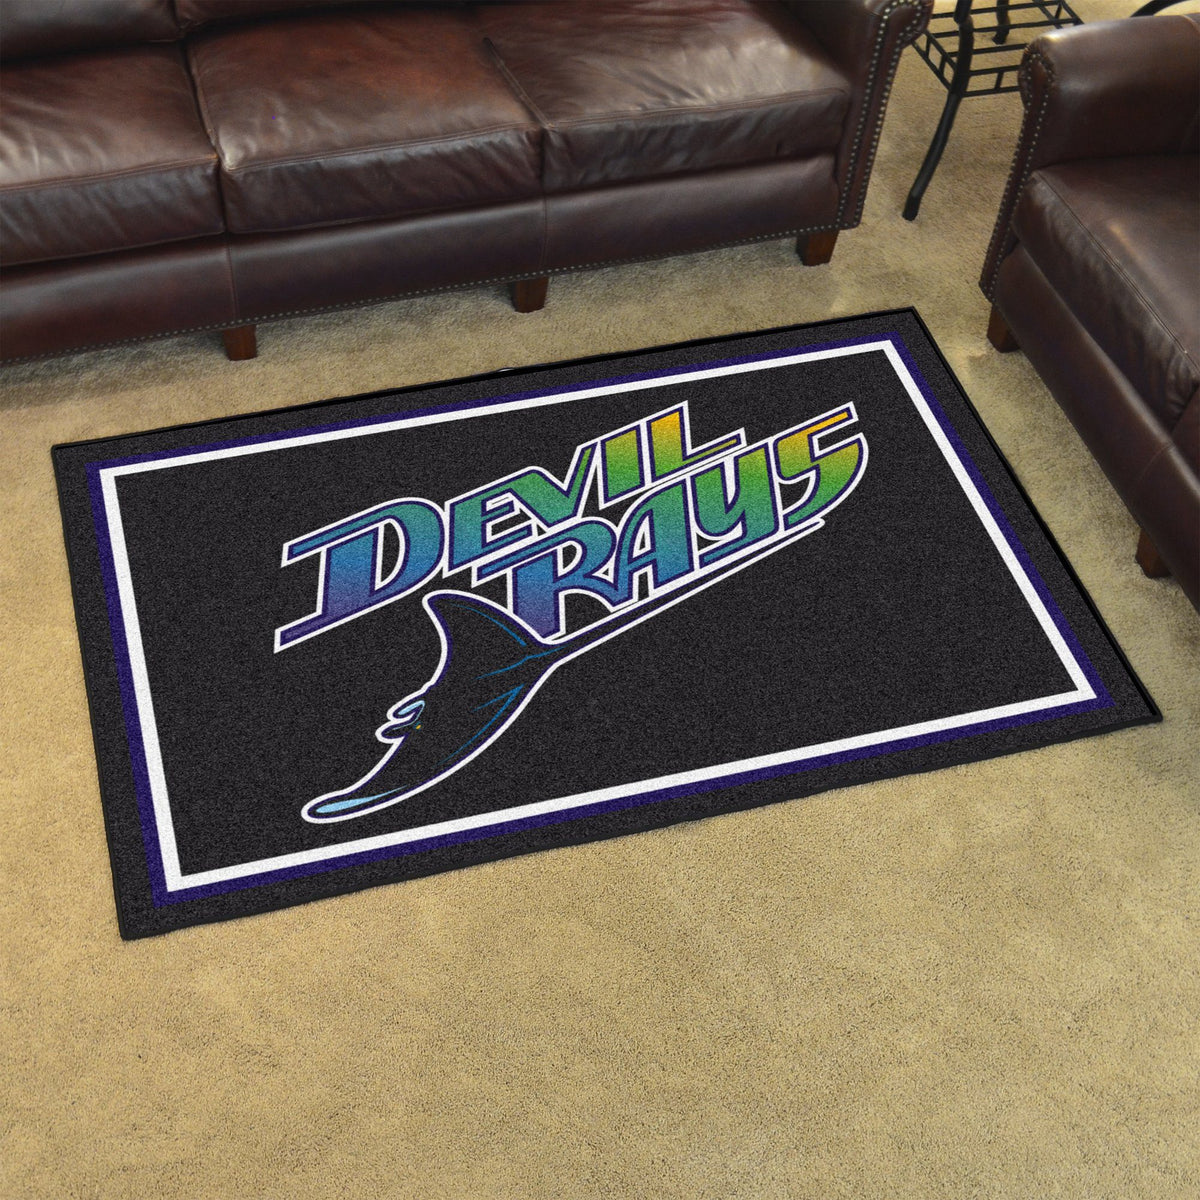 MLB Retro - 4' x 6' Rug MLB Retro Mats, Plush Rugs, 4x6 Rug, MLB, Home Fan Mats Tampa Bay Rays